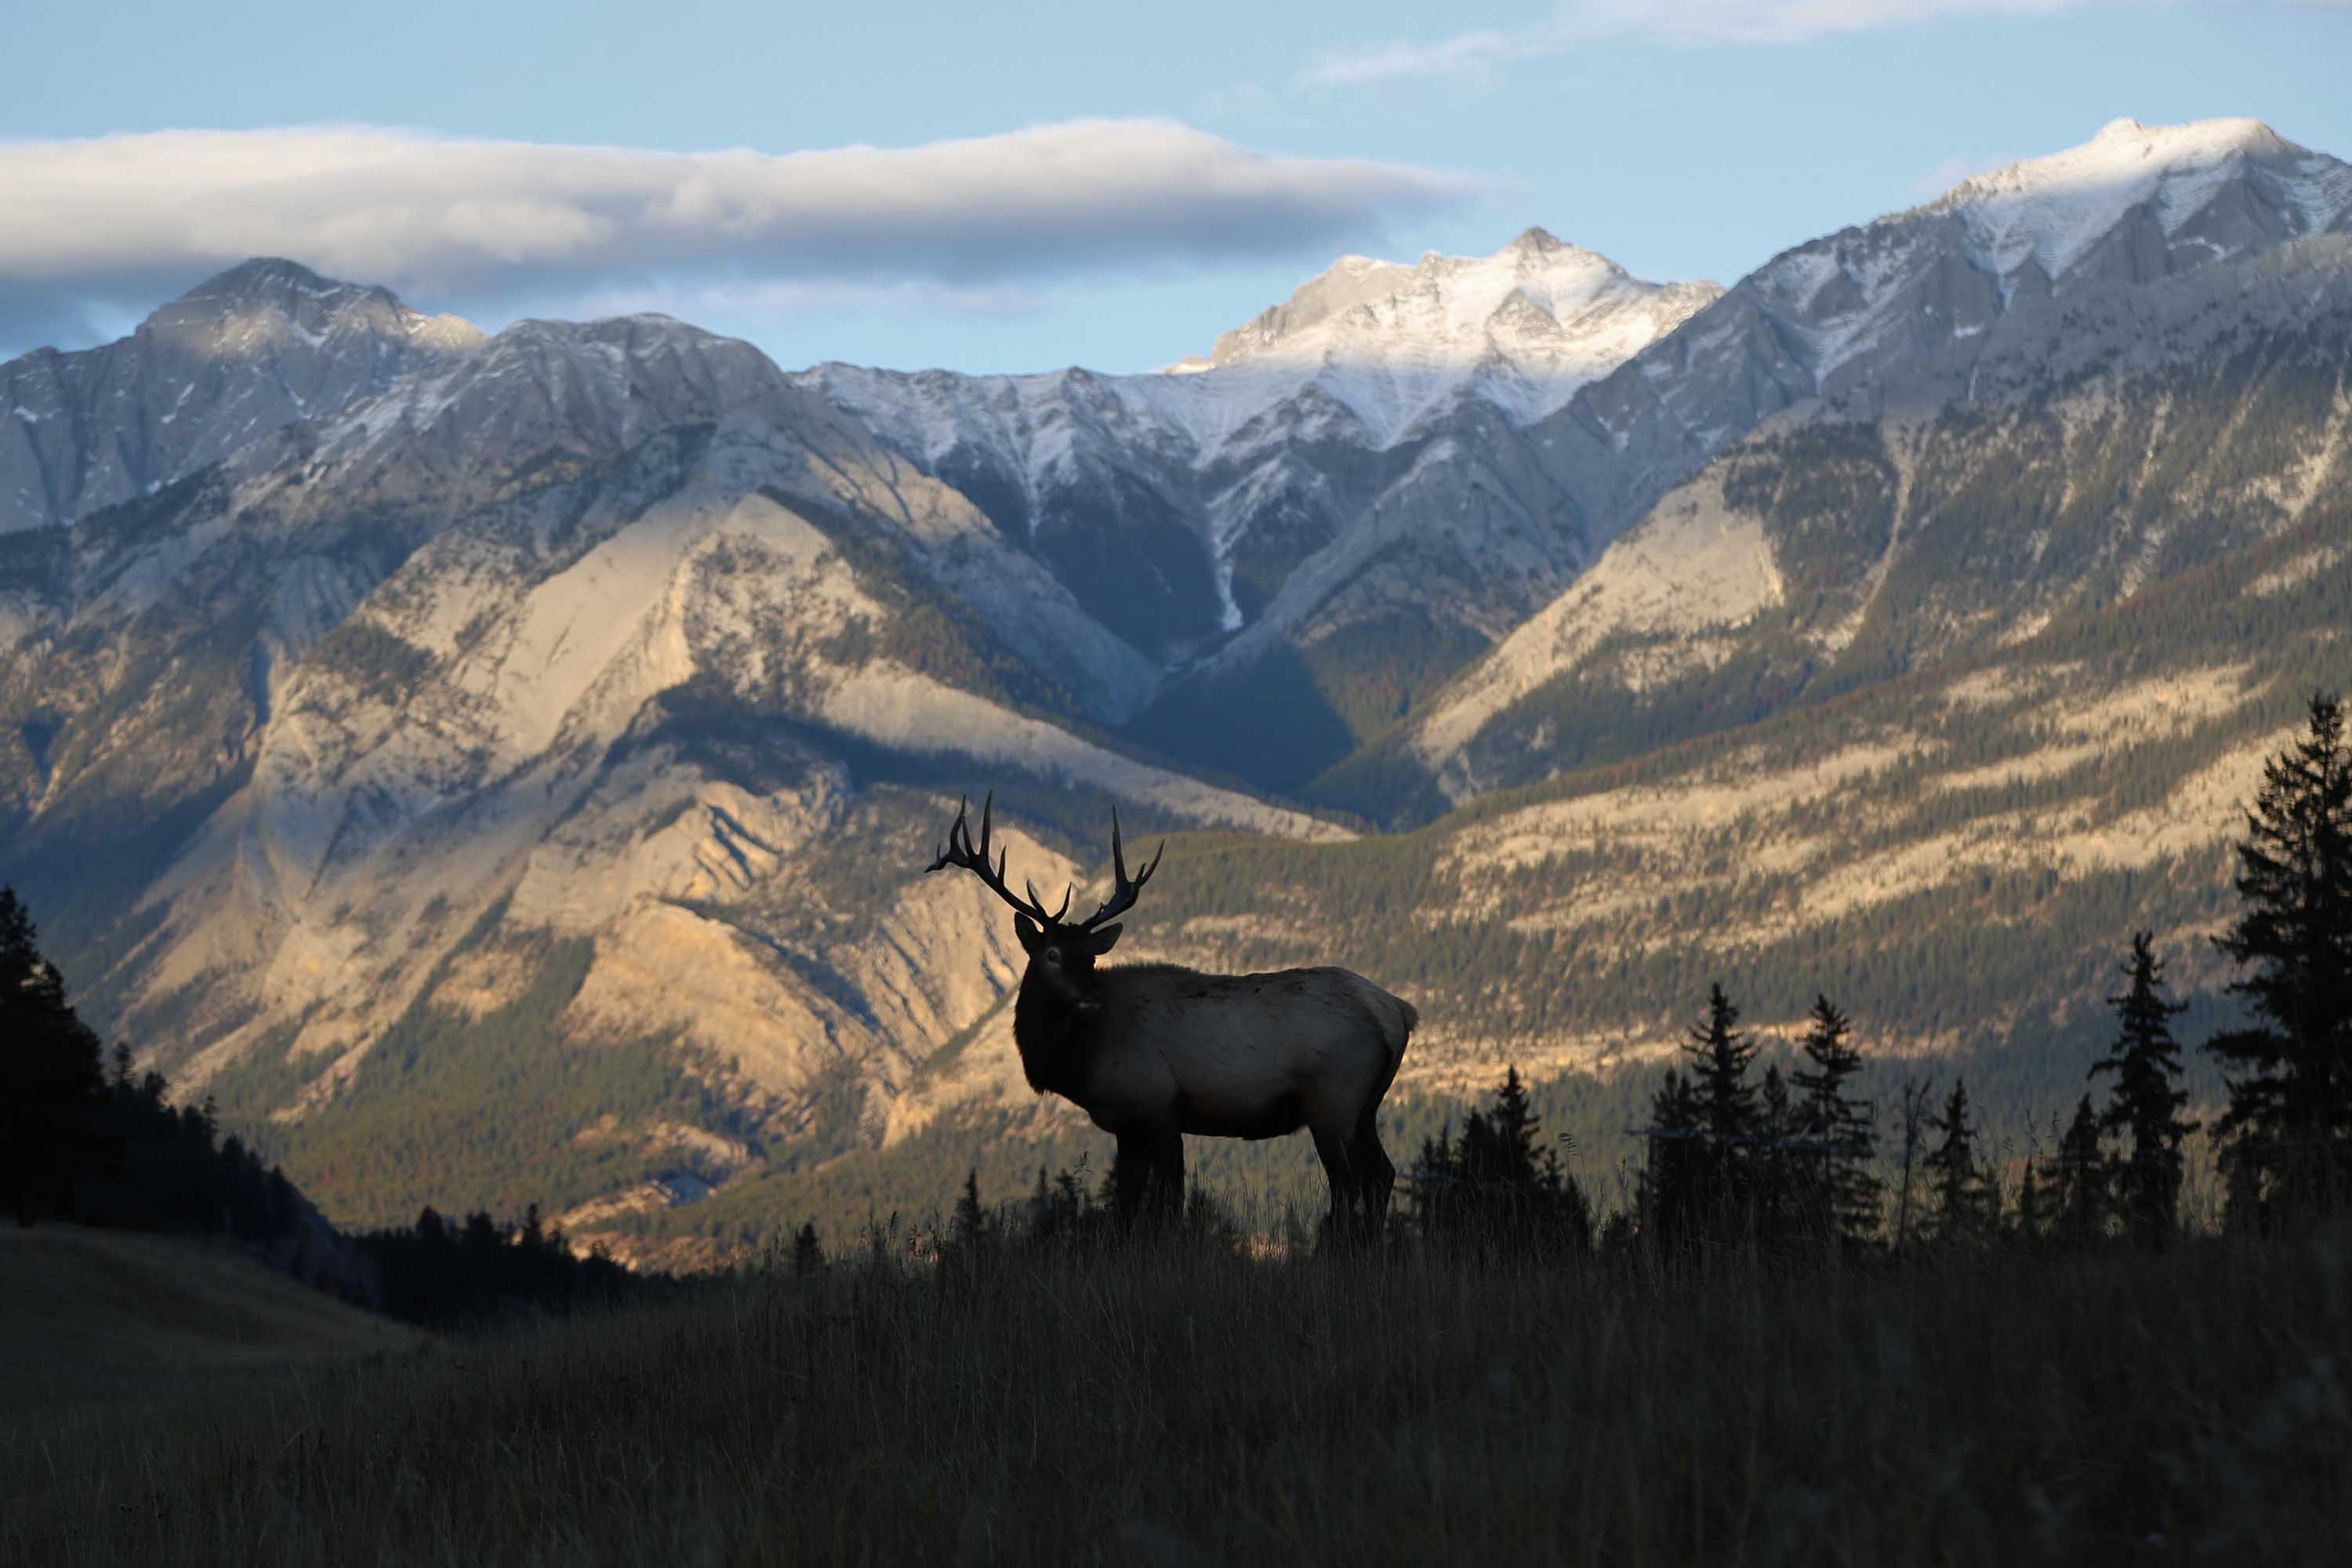 silhouette of deer and mountain background